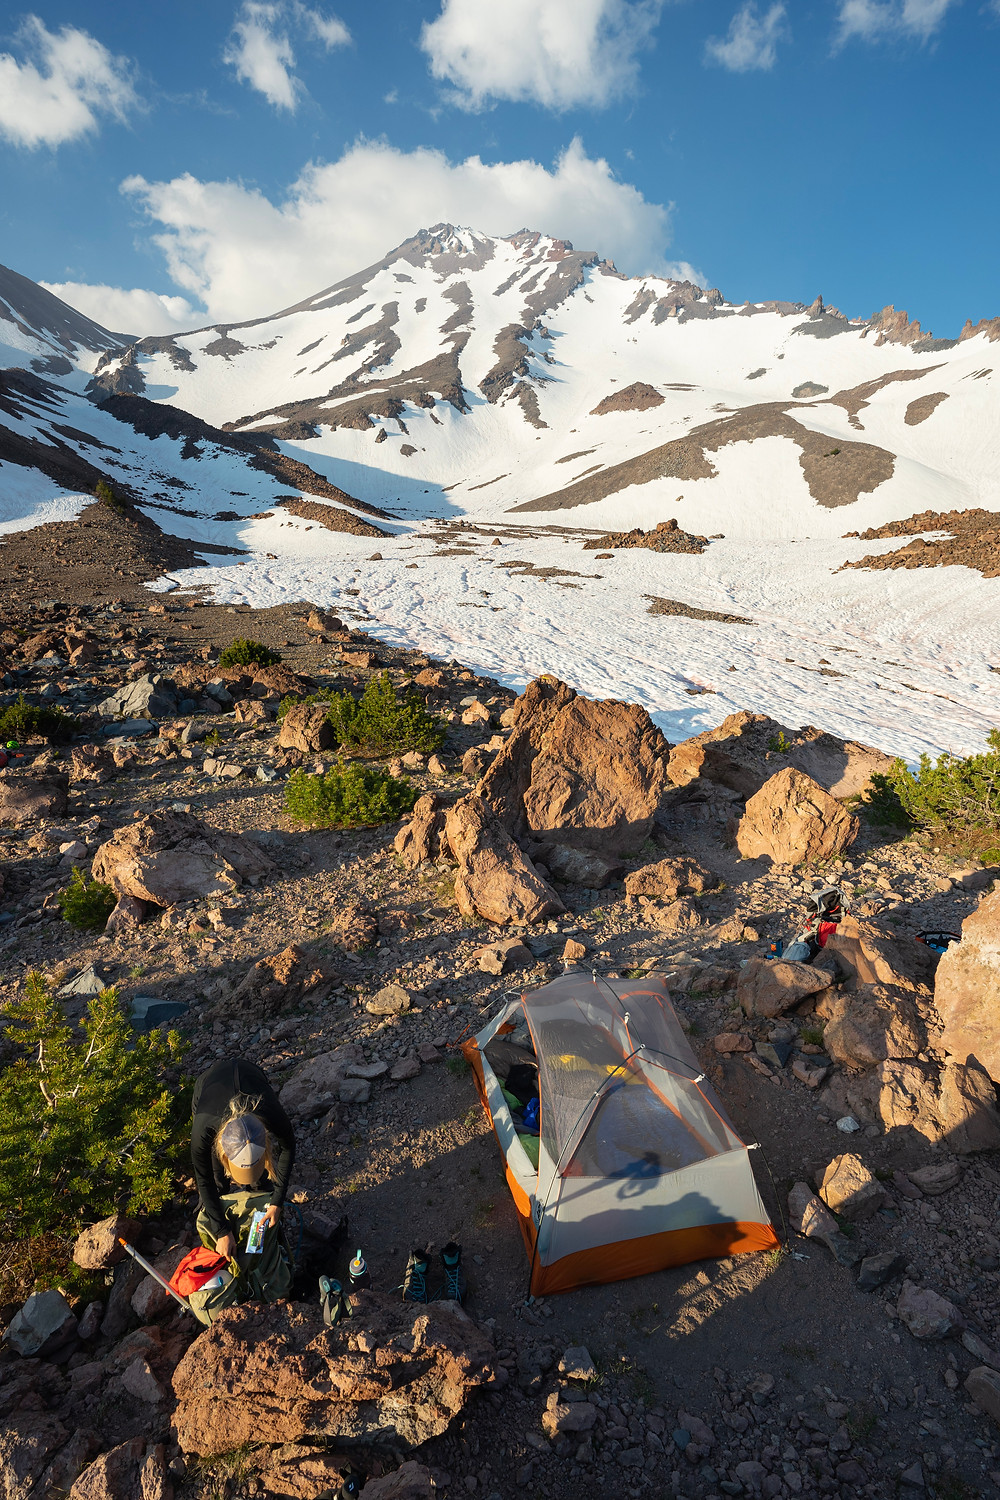 Camping in the Hidden Valley of Mount Shasta below the West Face route